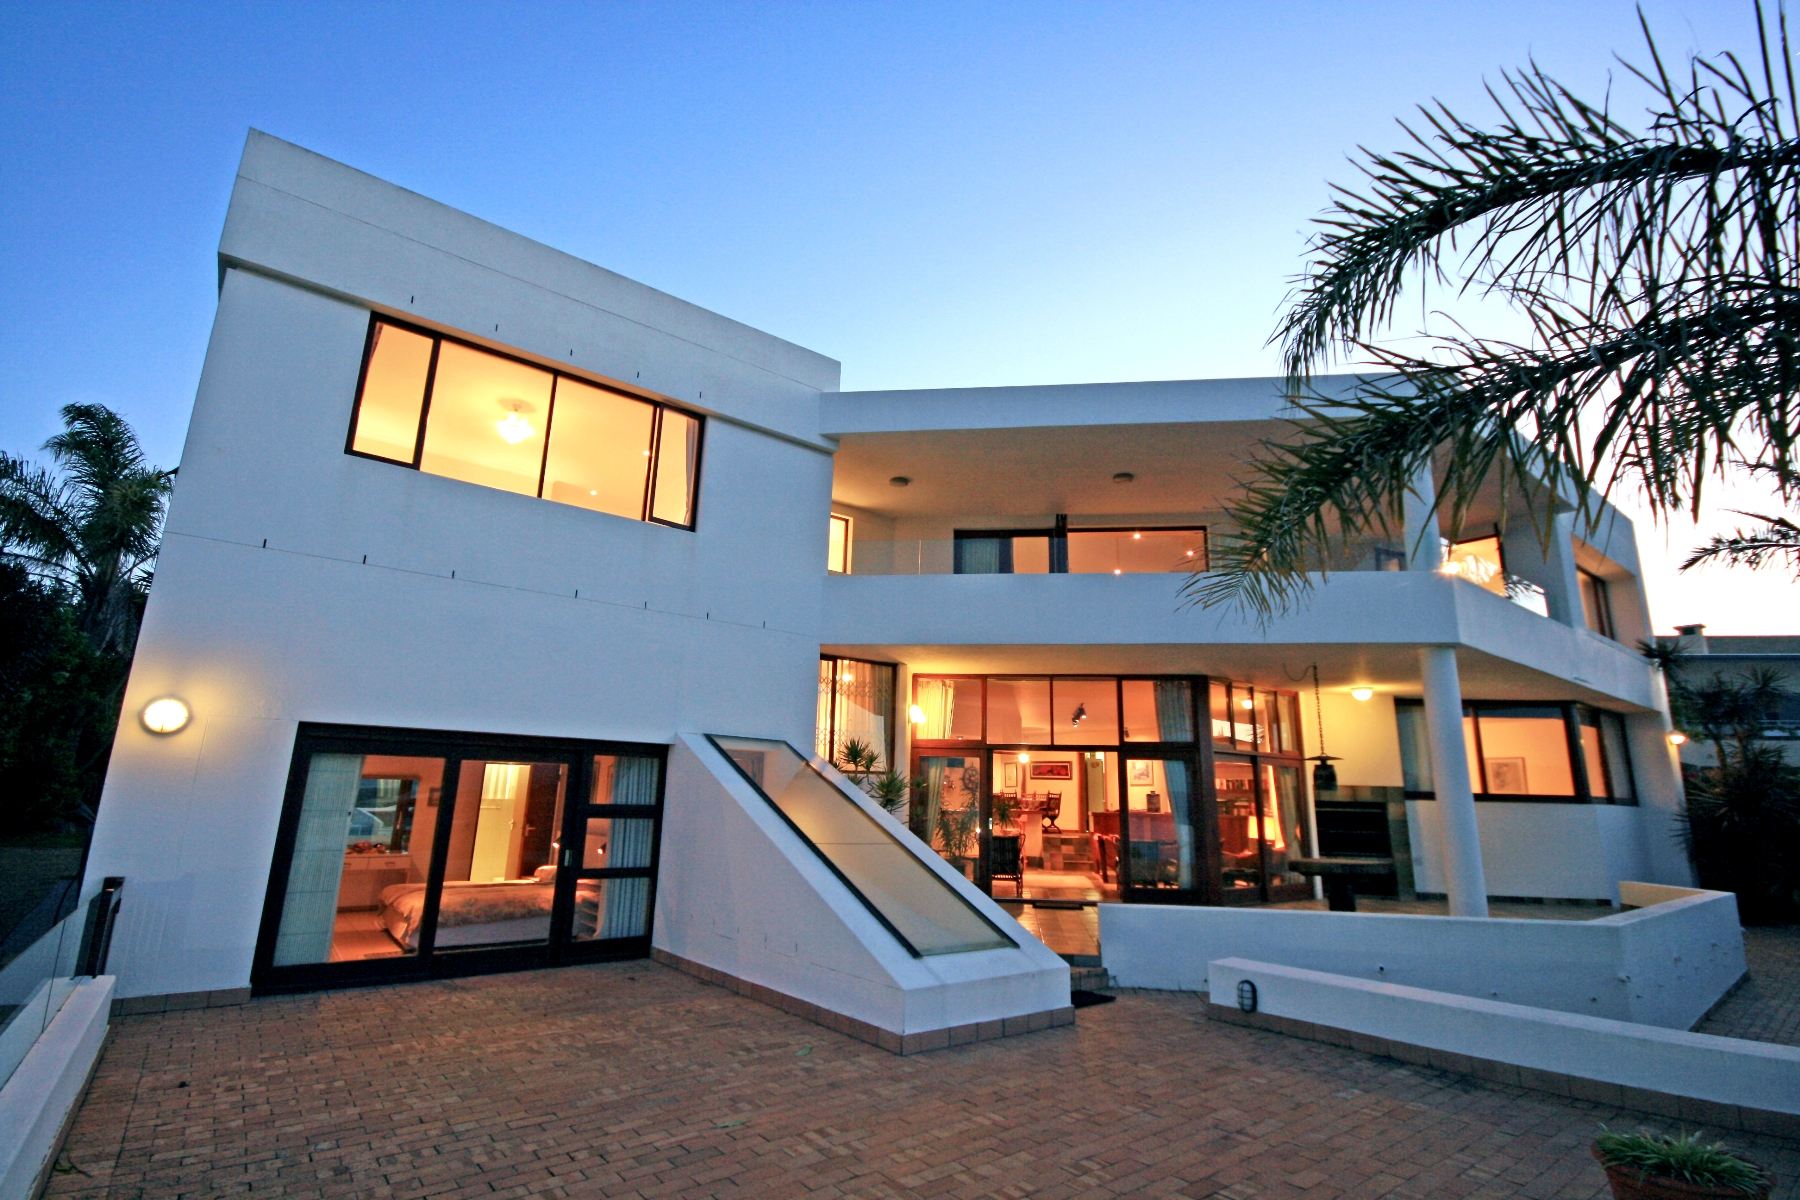 Single Family Home for Sale at Versatile Lifestyle Plettenberg Bay, Western Cape, 6600 South Africa